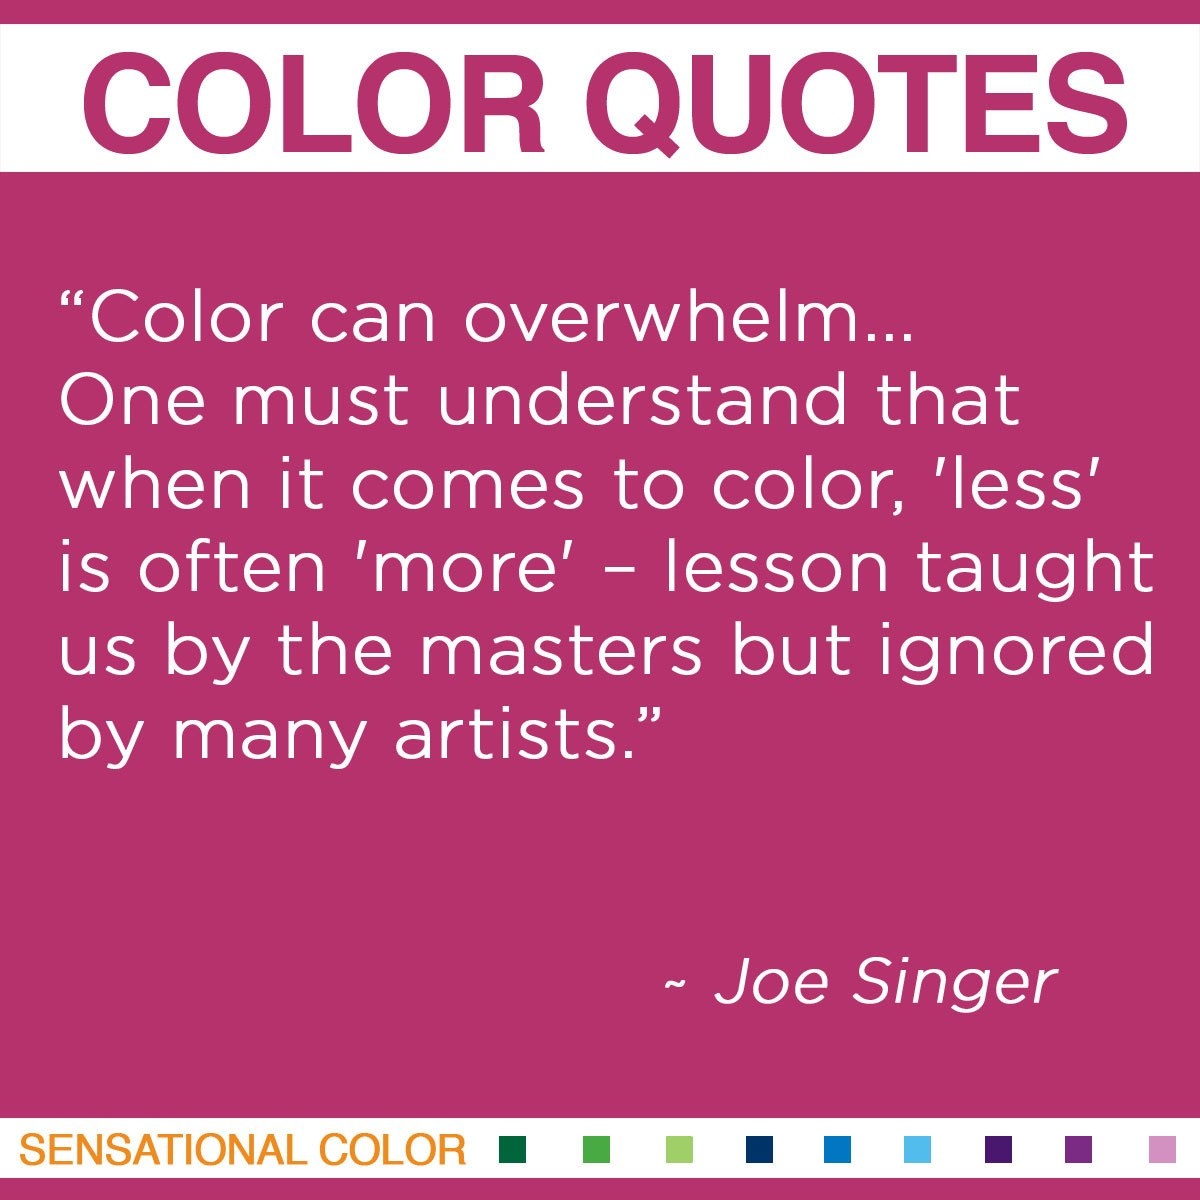 """Color can overwhelm… One must understand that when it comes to color, 'less' is often 'more' – lesson taught us by the masters but ignored by many artists."" - Joe Singer"